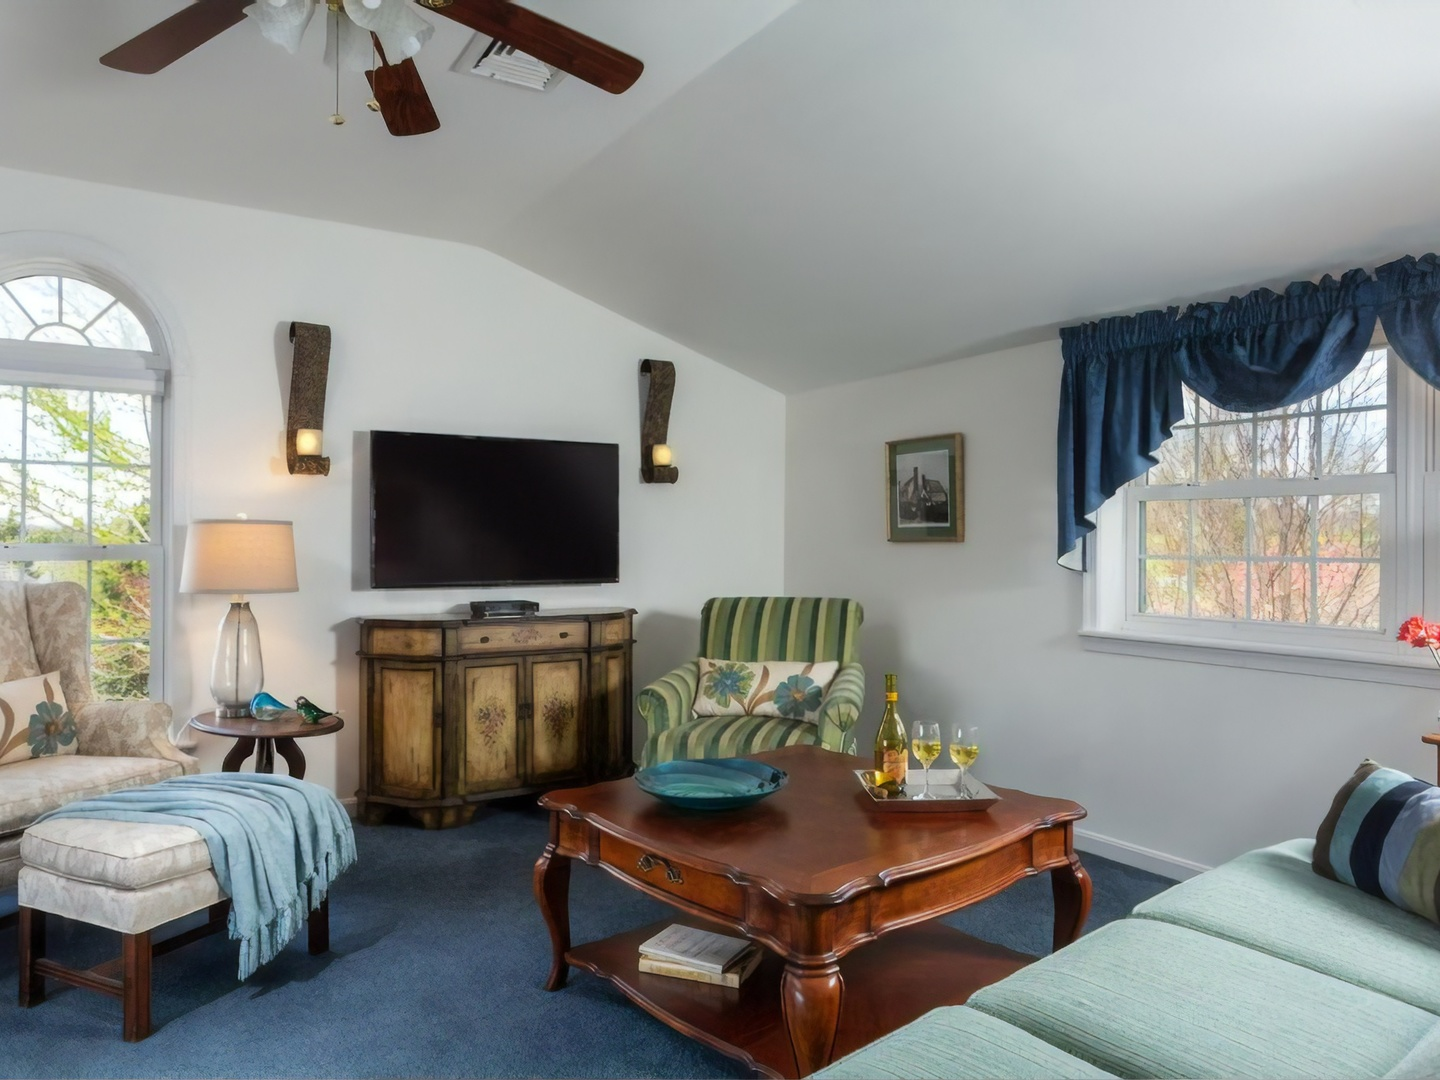 A living room filled with furniture and a large window at The Inn at Westwynd Farm.